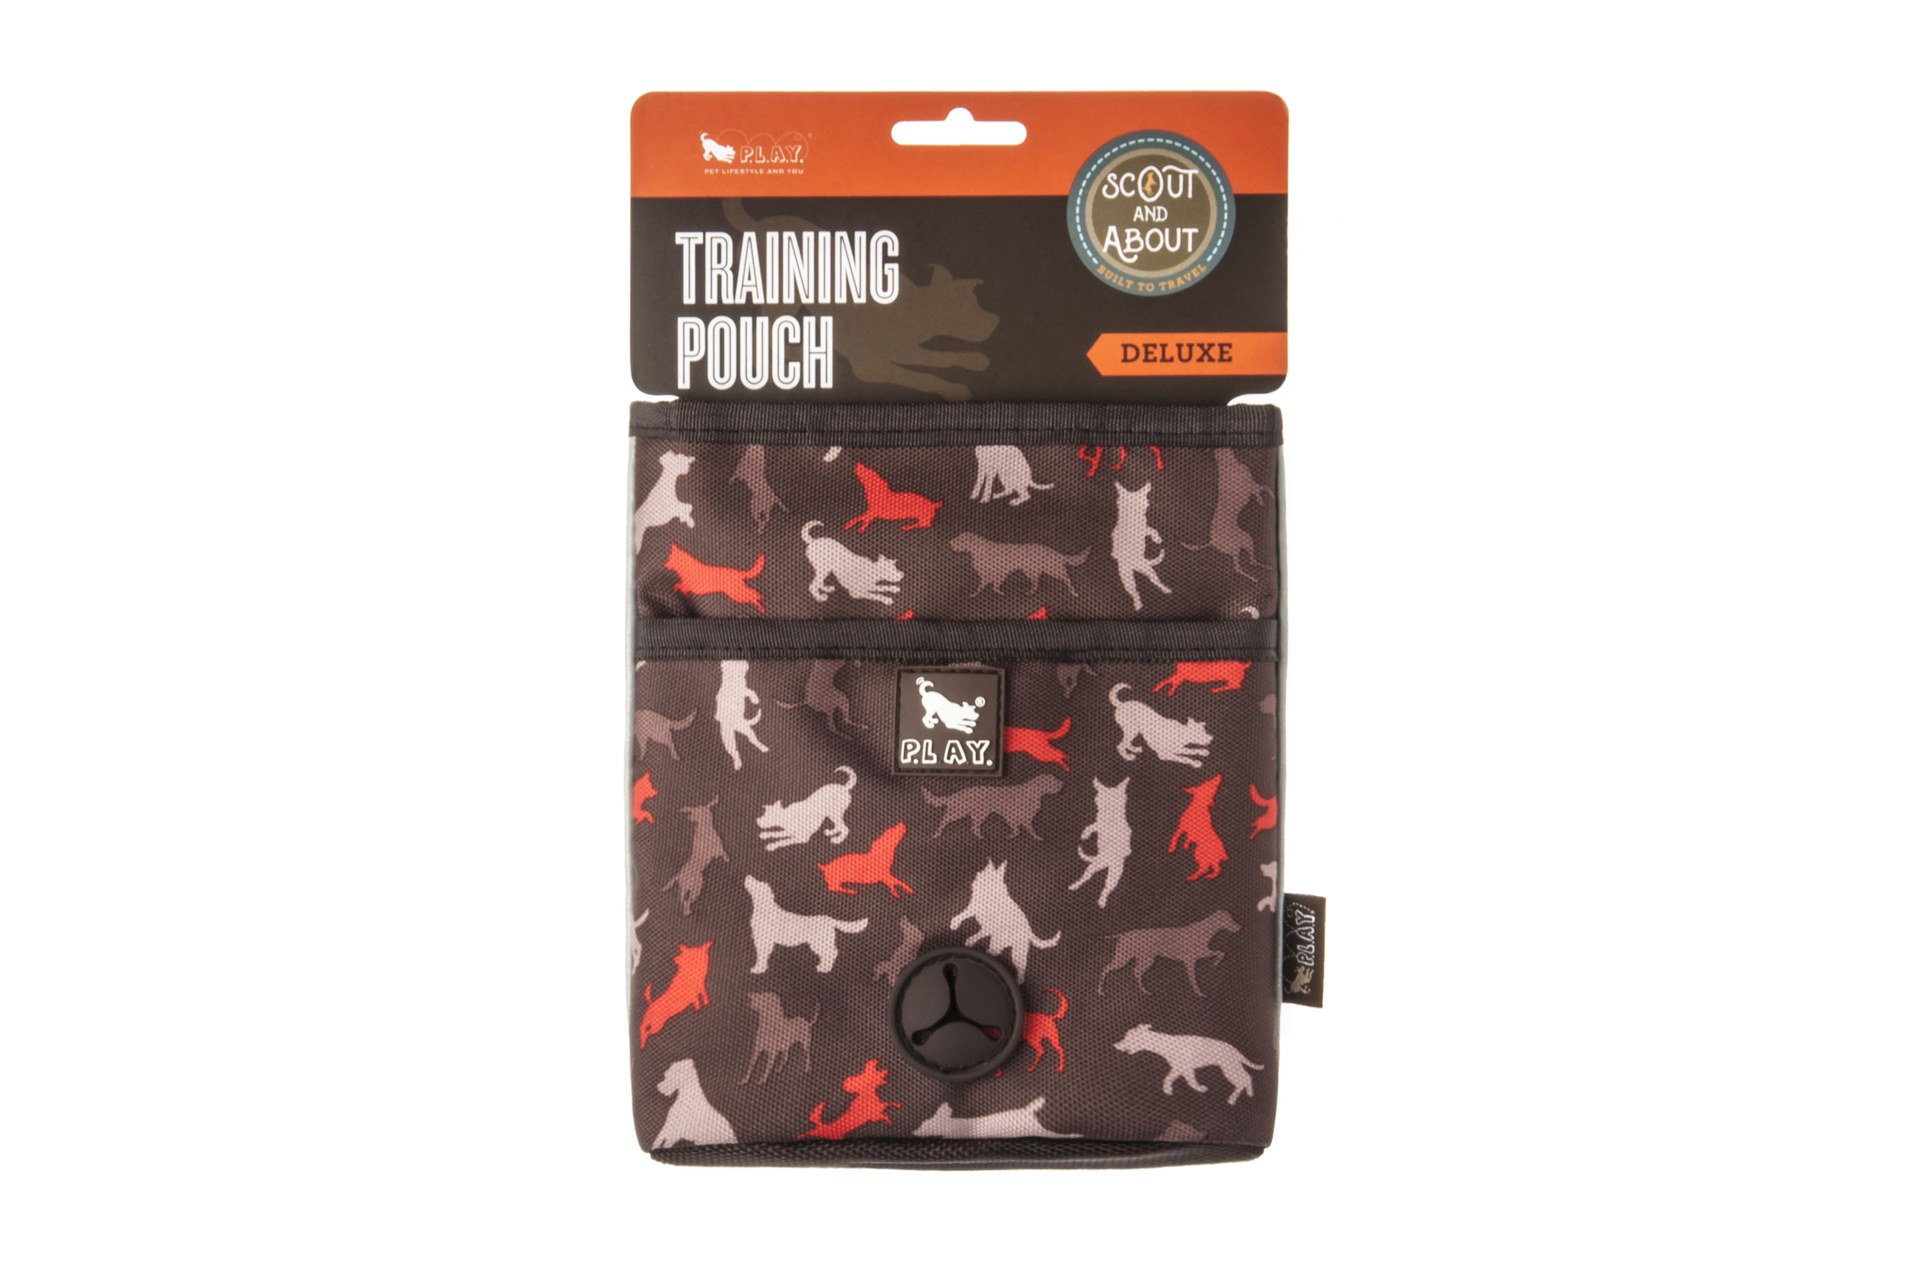 P.L.A.Y. Deluxe Scout & About Dog Training Pouch, Mocha Image